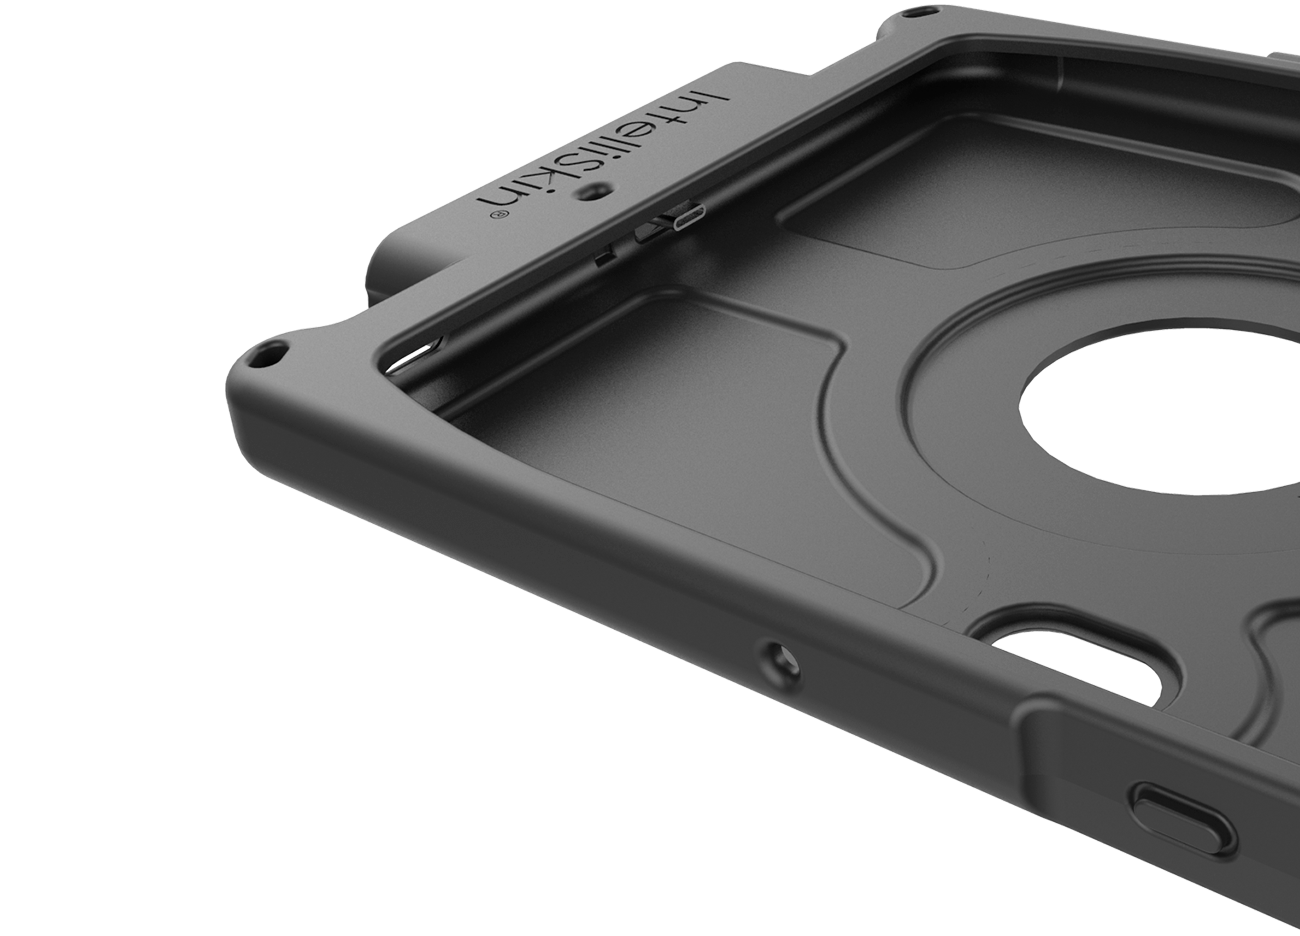 Angled view of an empty IntelliSkin® case for a Samsung Galaxy S10